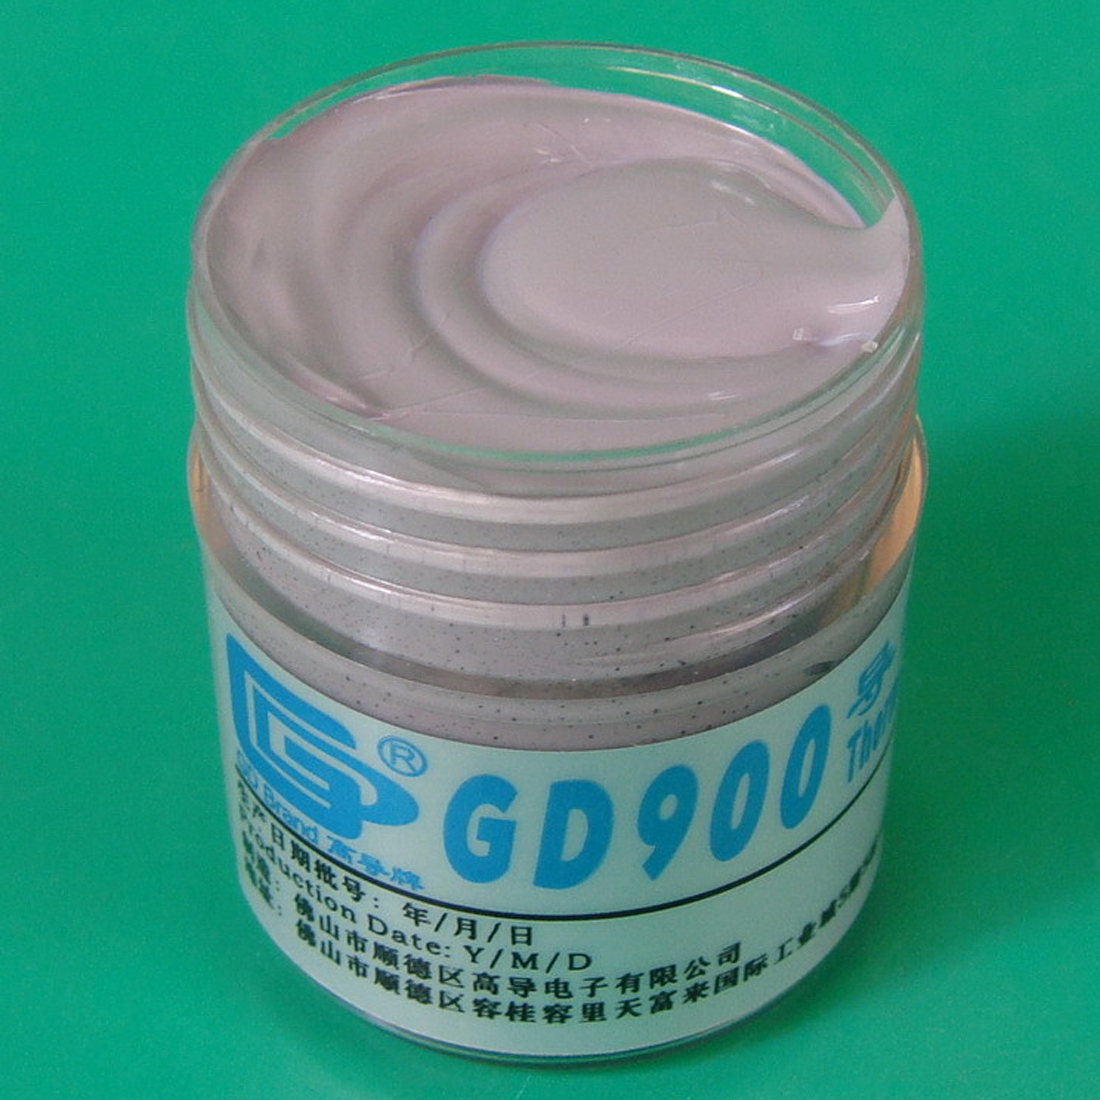 NOYOKERE Thermal Conductive Grease Paste Silicone GD900 Heatsink Compound Net Weight 30 Grams High Performance For CPU CN30